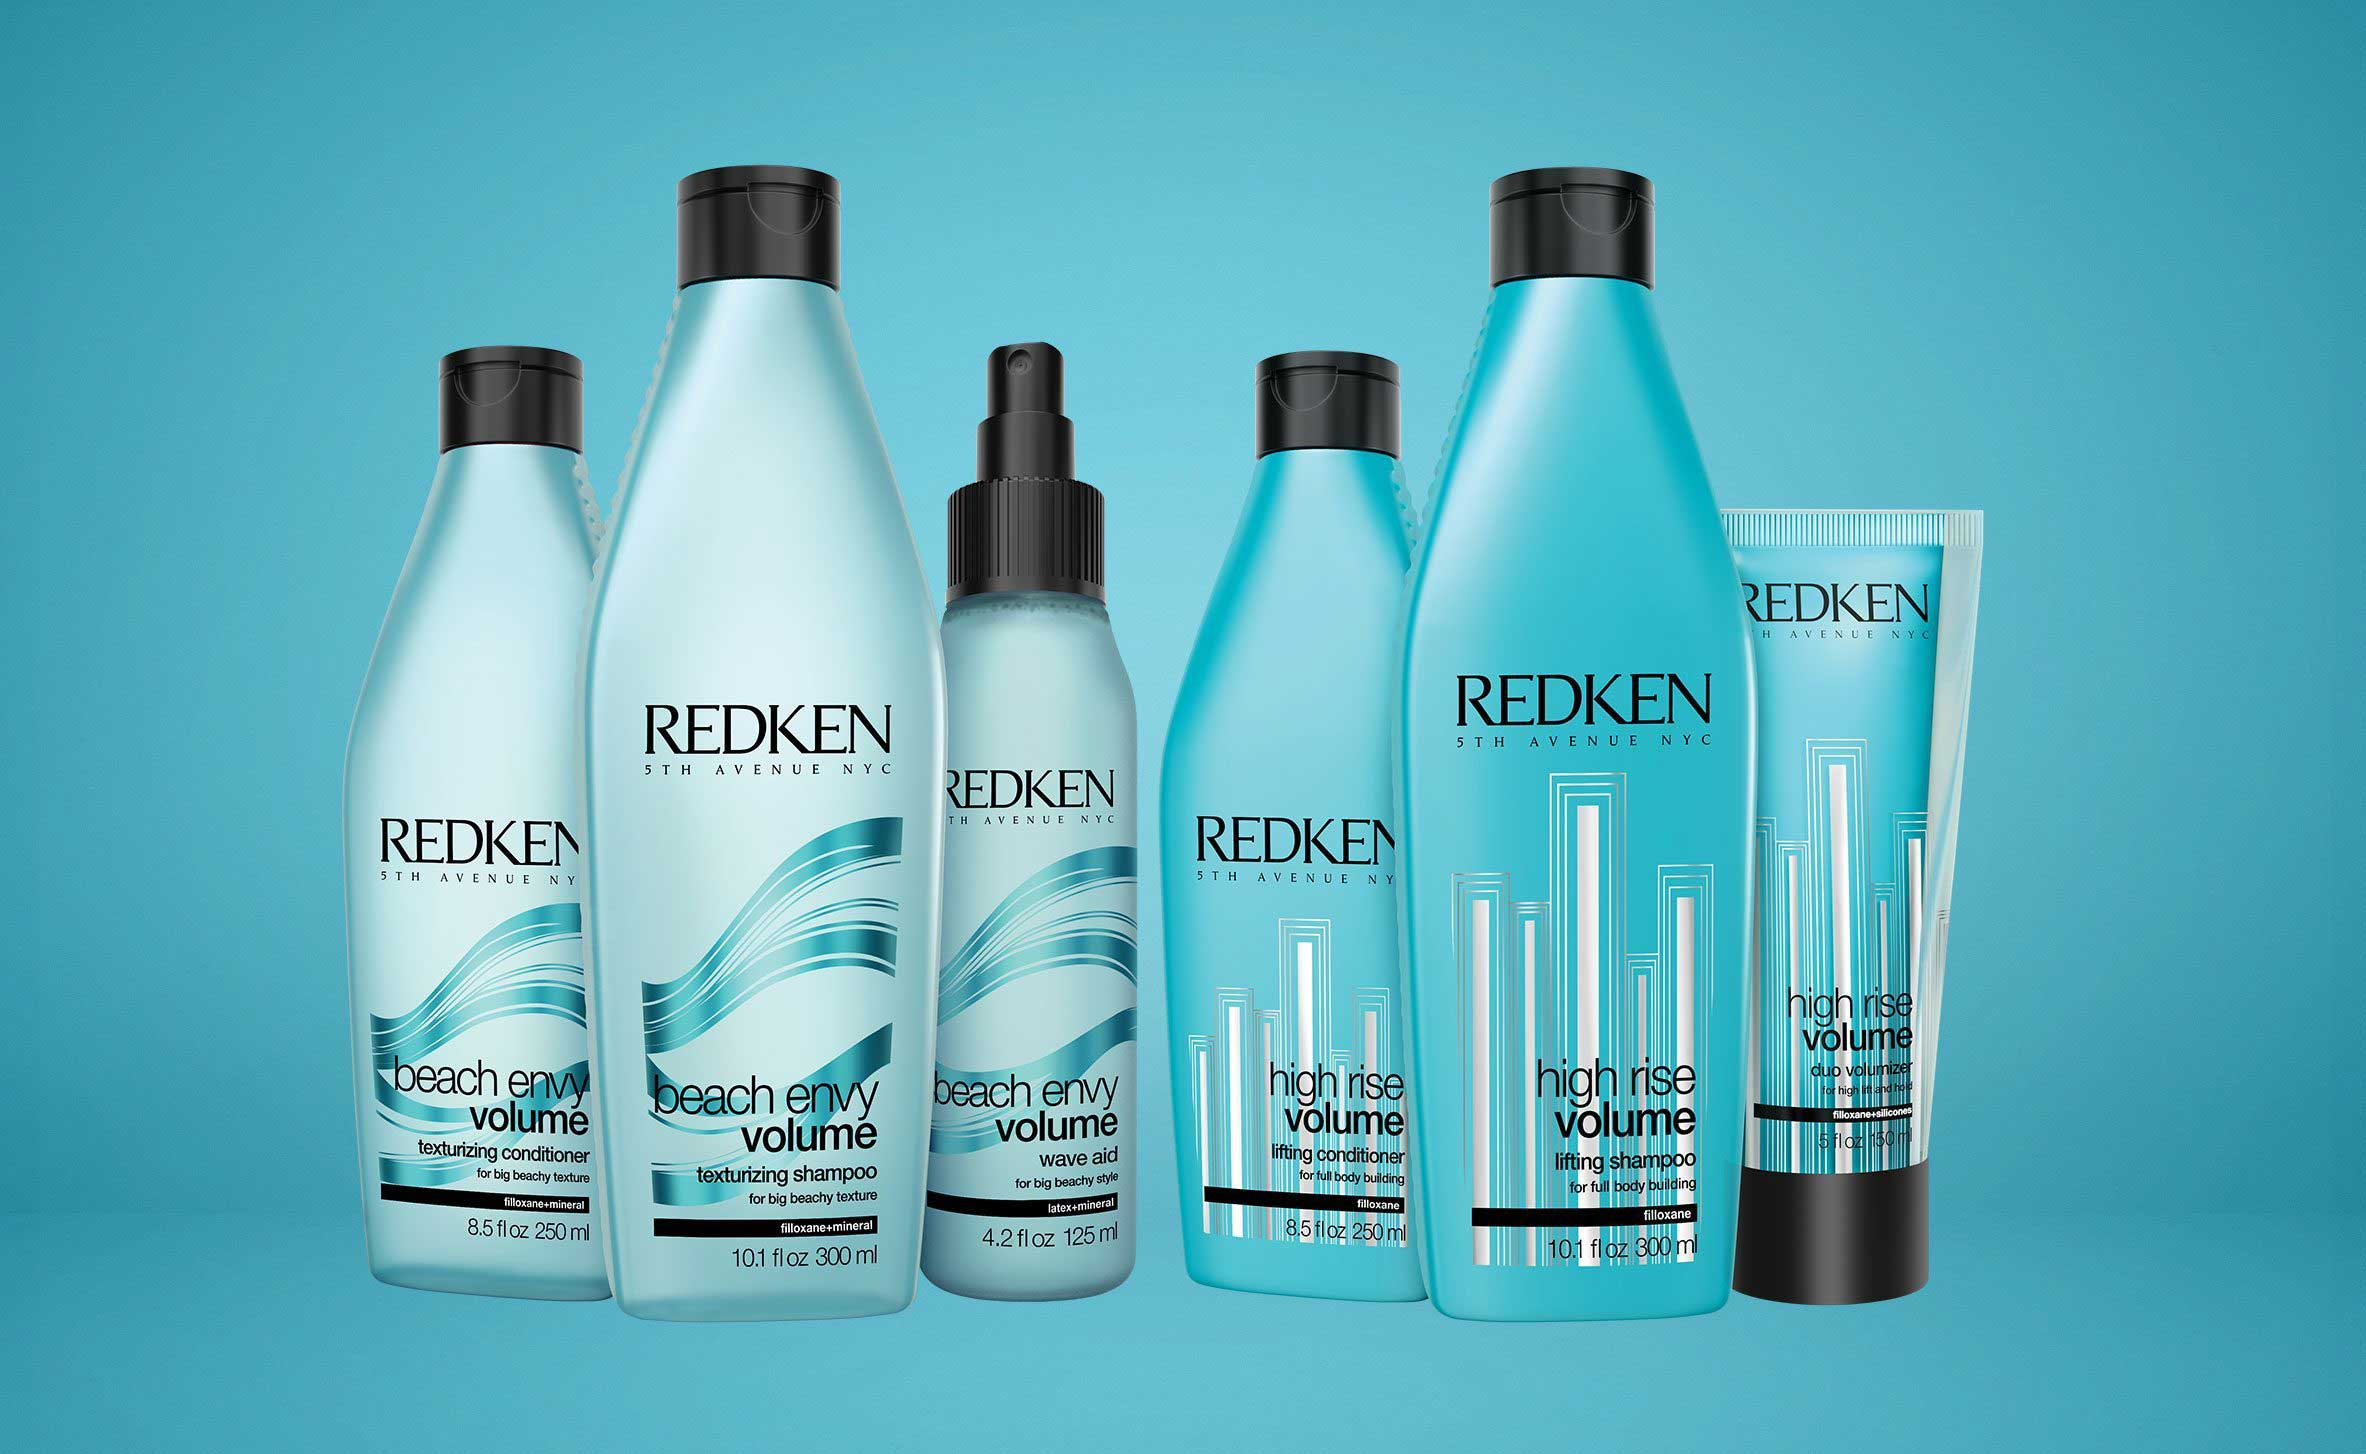 redken styling products for hair envy amp high rise volume hair haircare products 8688